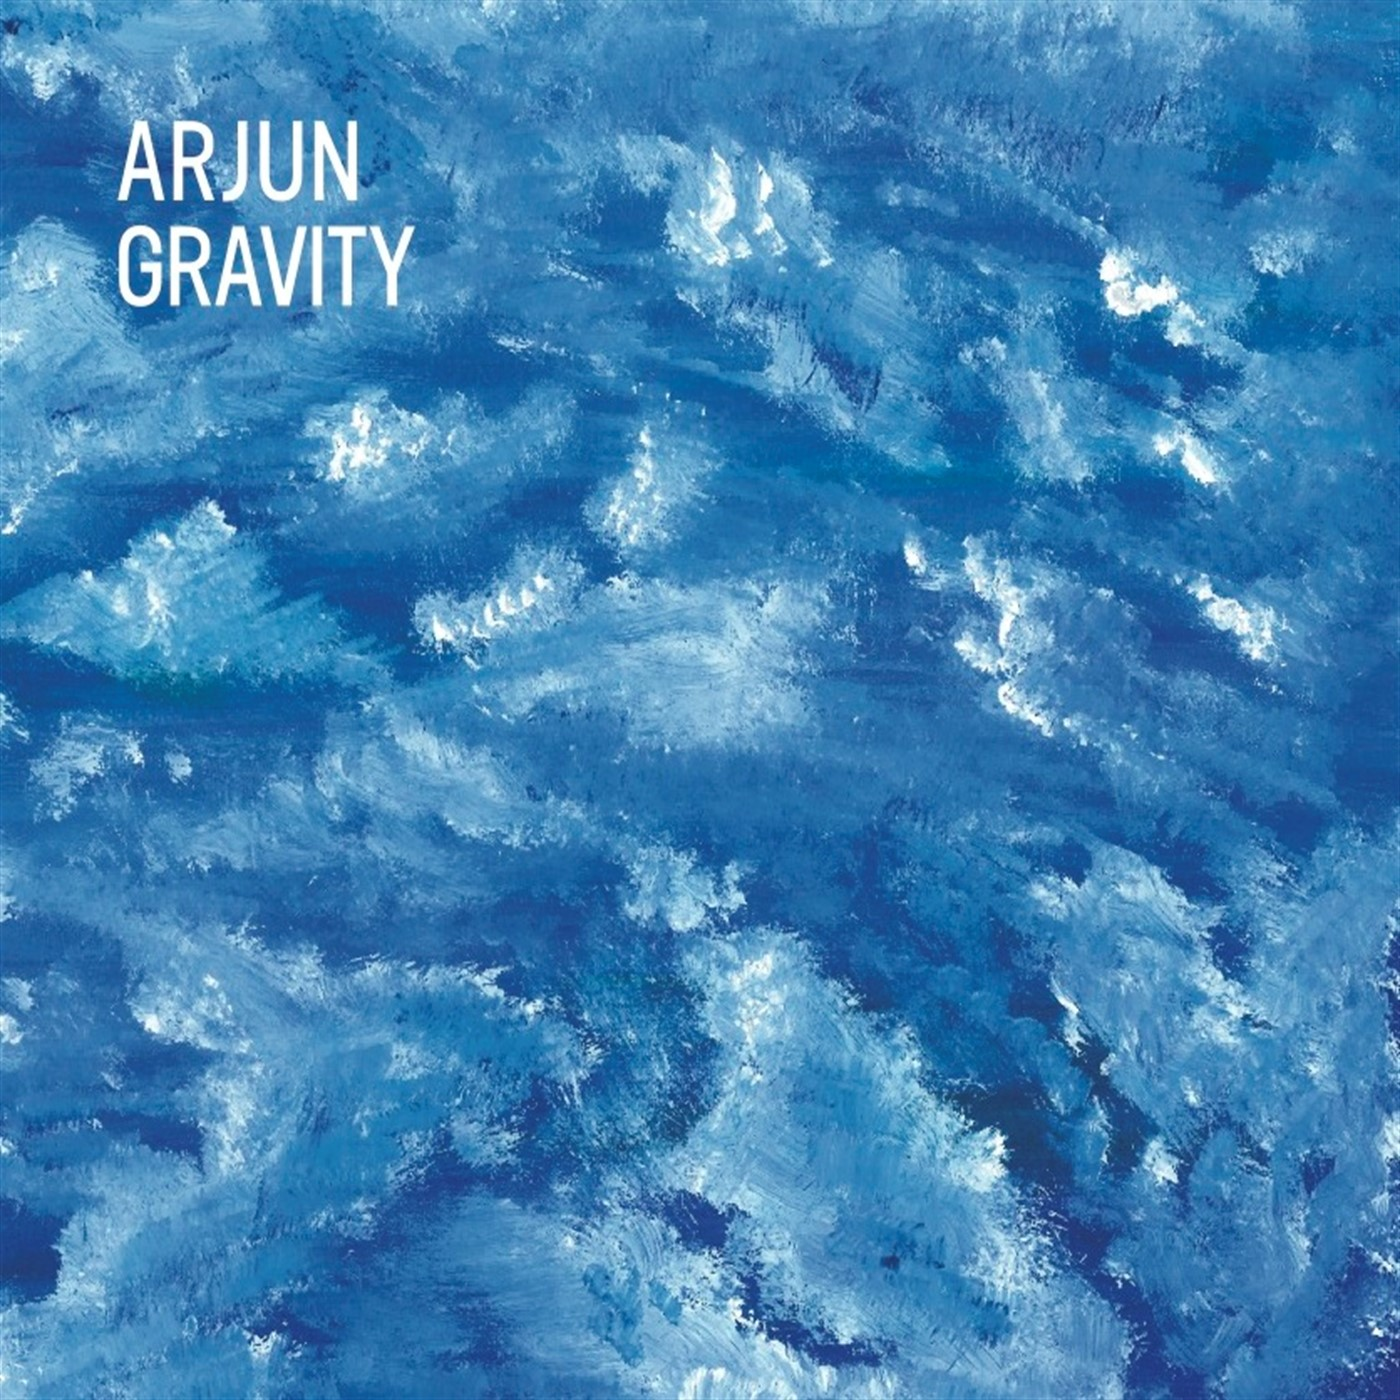 ARJUN GRAVITY Cover.jpg